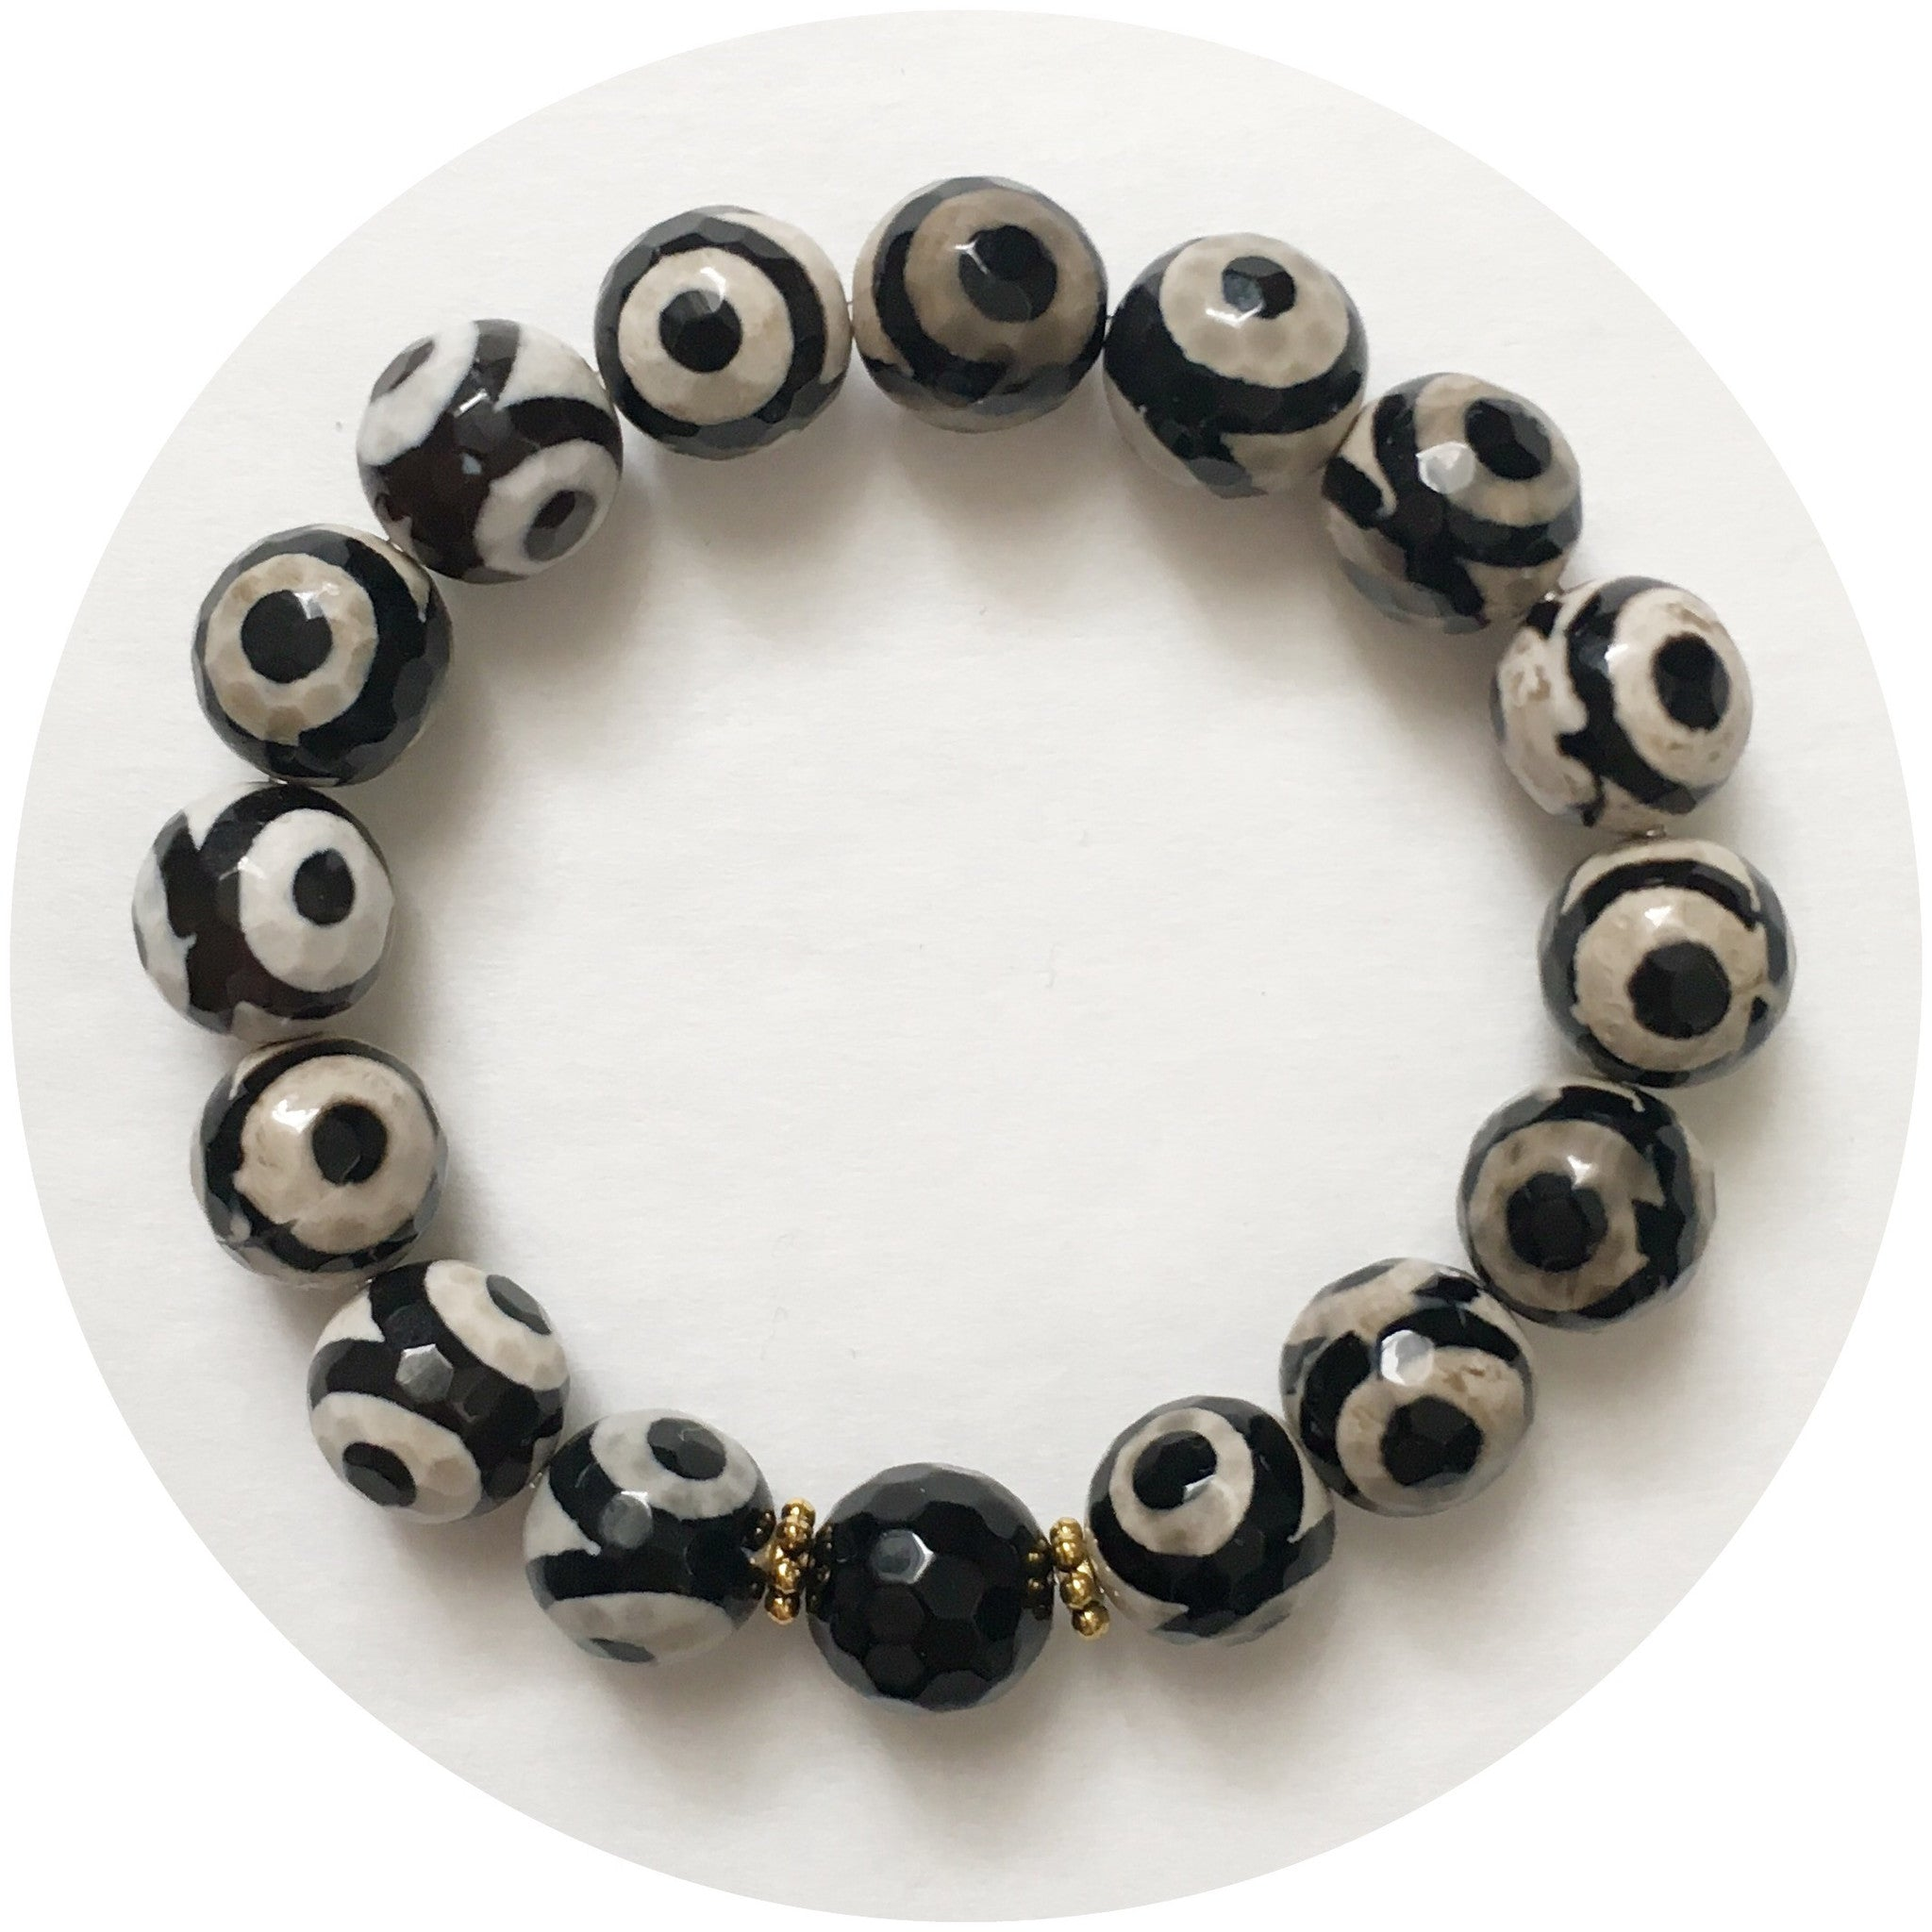 Tibetan Black Eye Agate with Black Onyx - Oriana Lamarca LLC